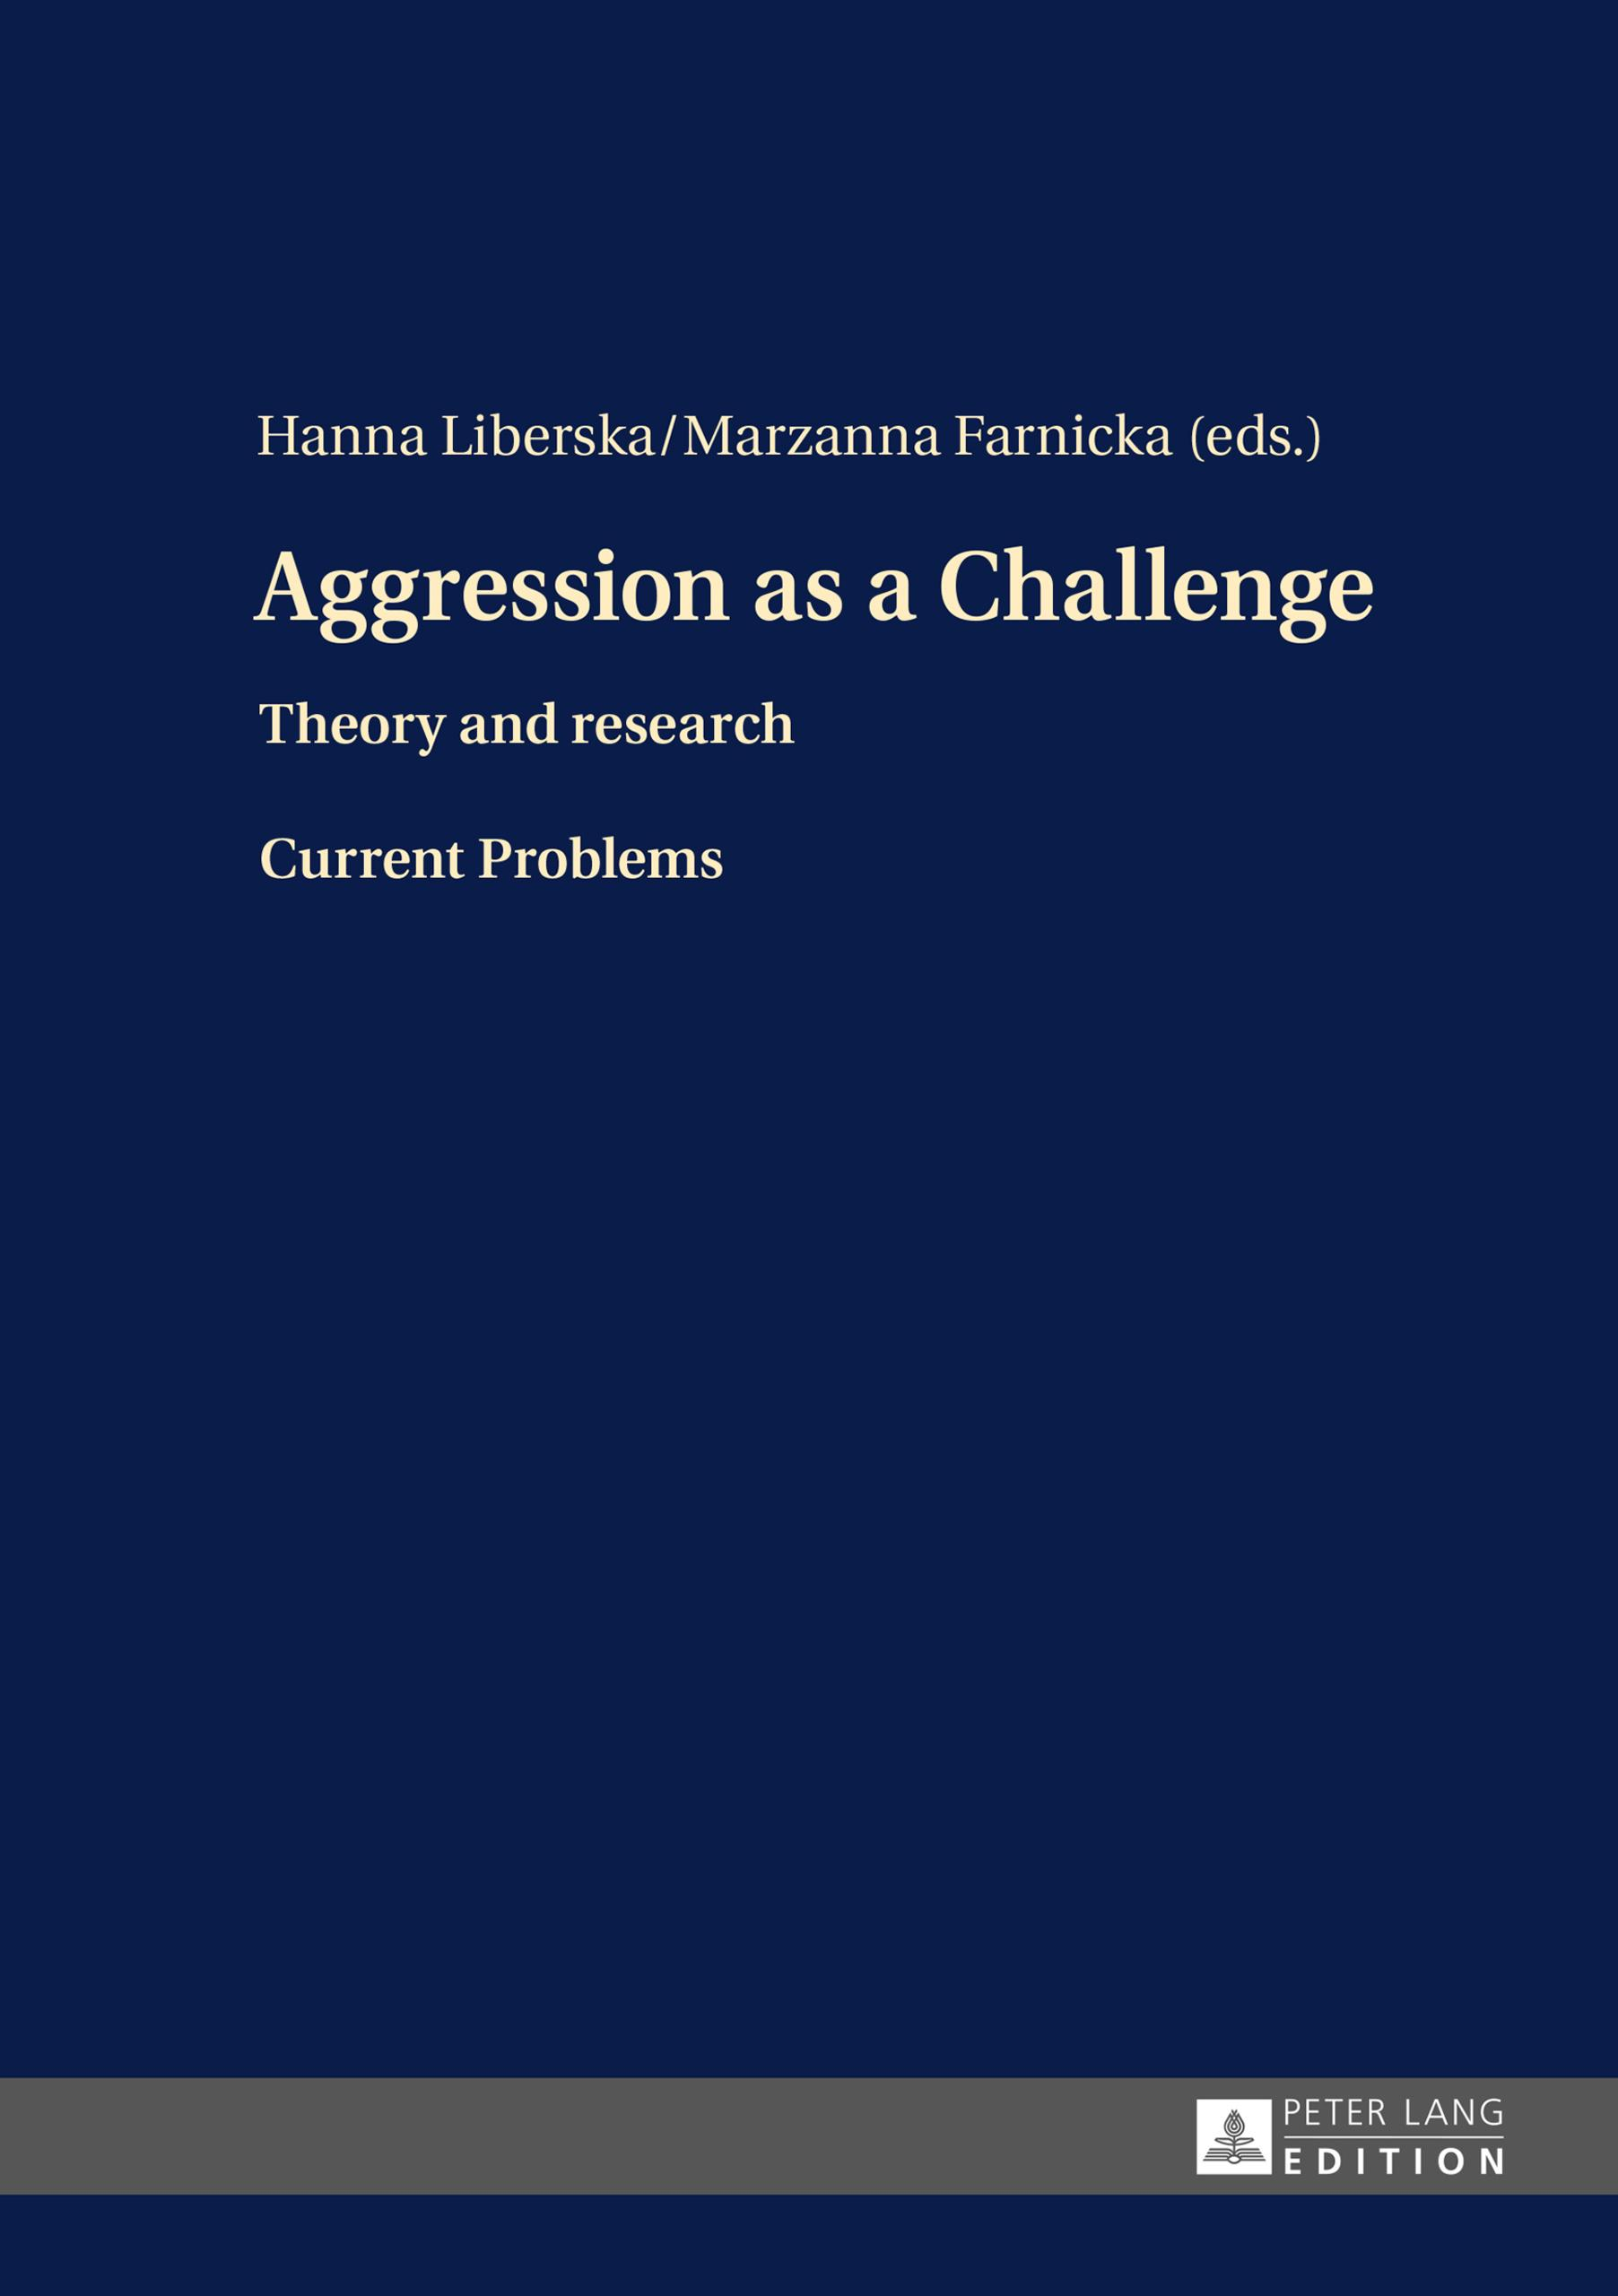 Aggression-as-a-Challenge-Hanna-Liberska